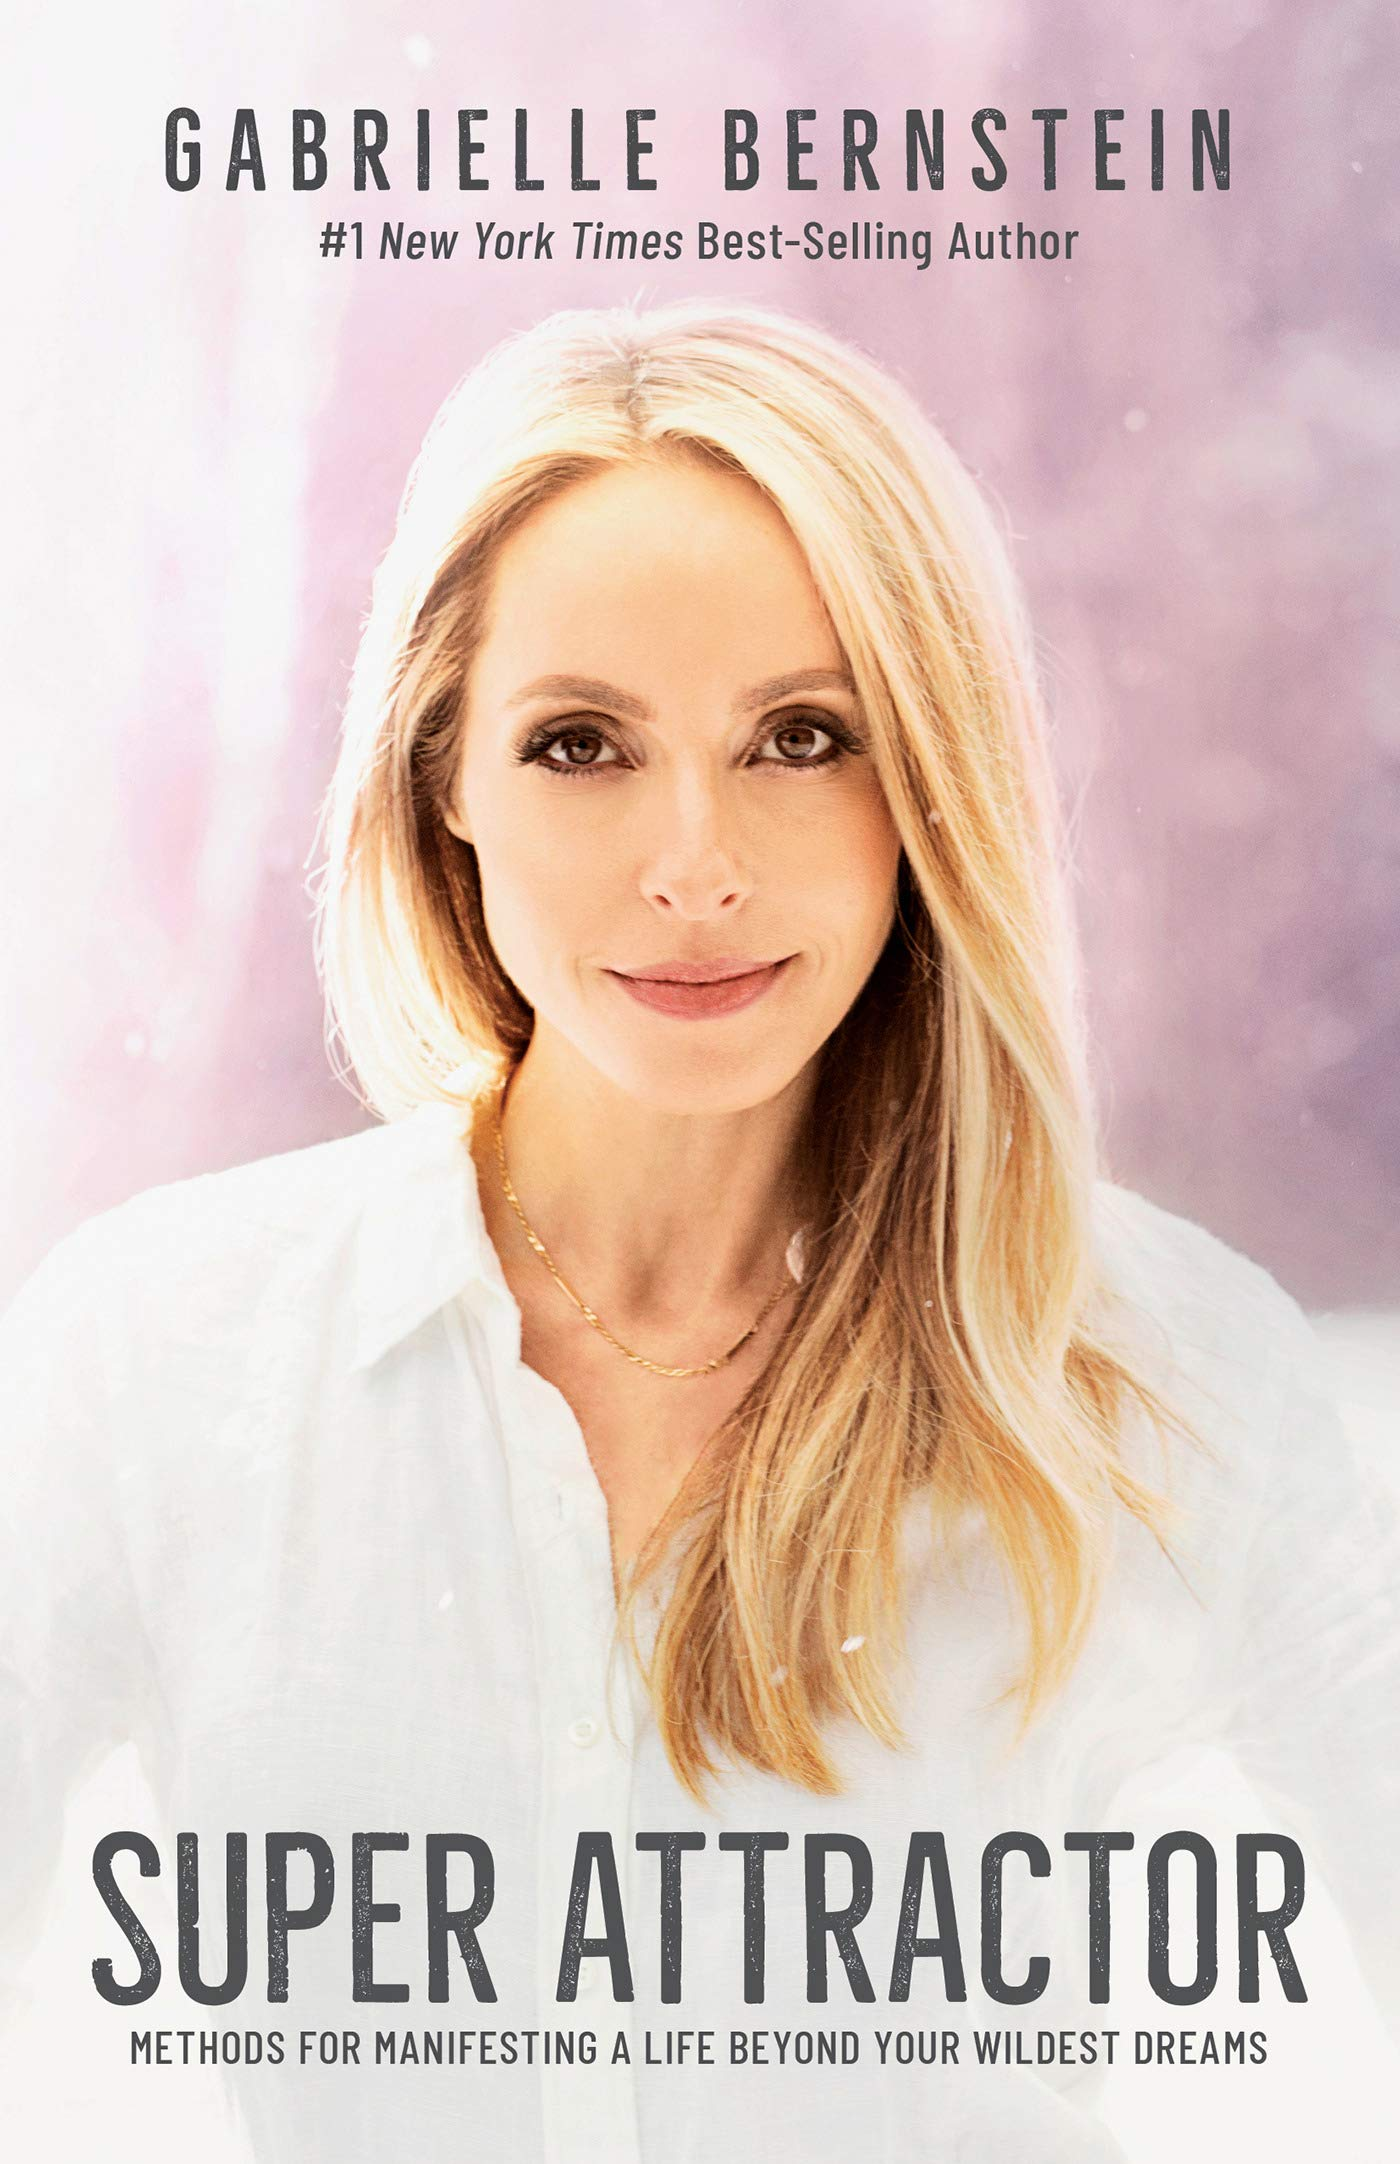 Super Attractor; Gabrielle Bernstein